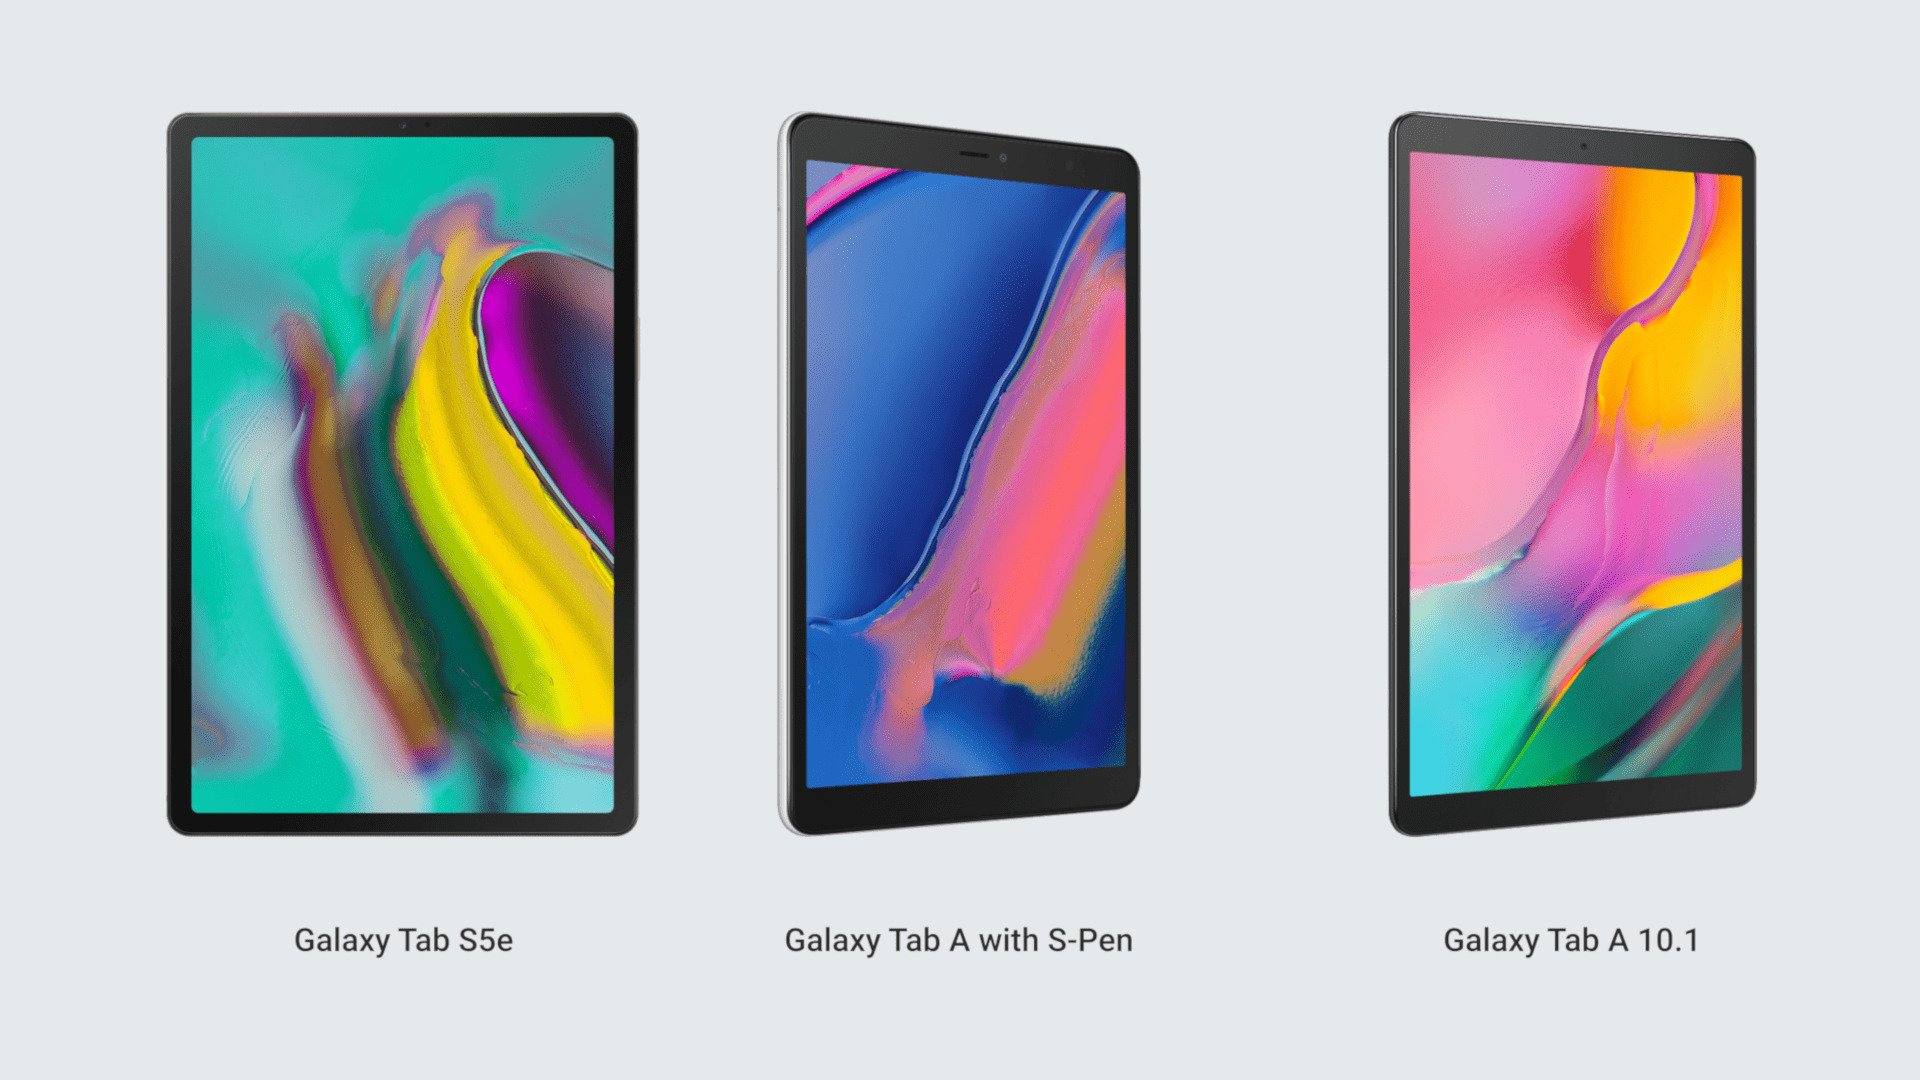 Samsung Launches Galaxy Tab S5e Tab A 10 1 And Tab A With S Pen In Malaysia Prime Inspiration